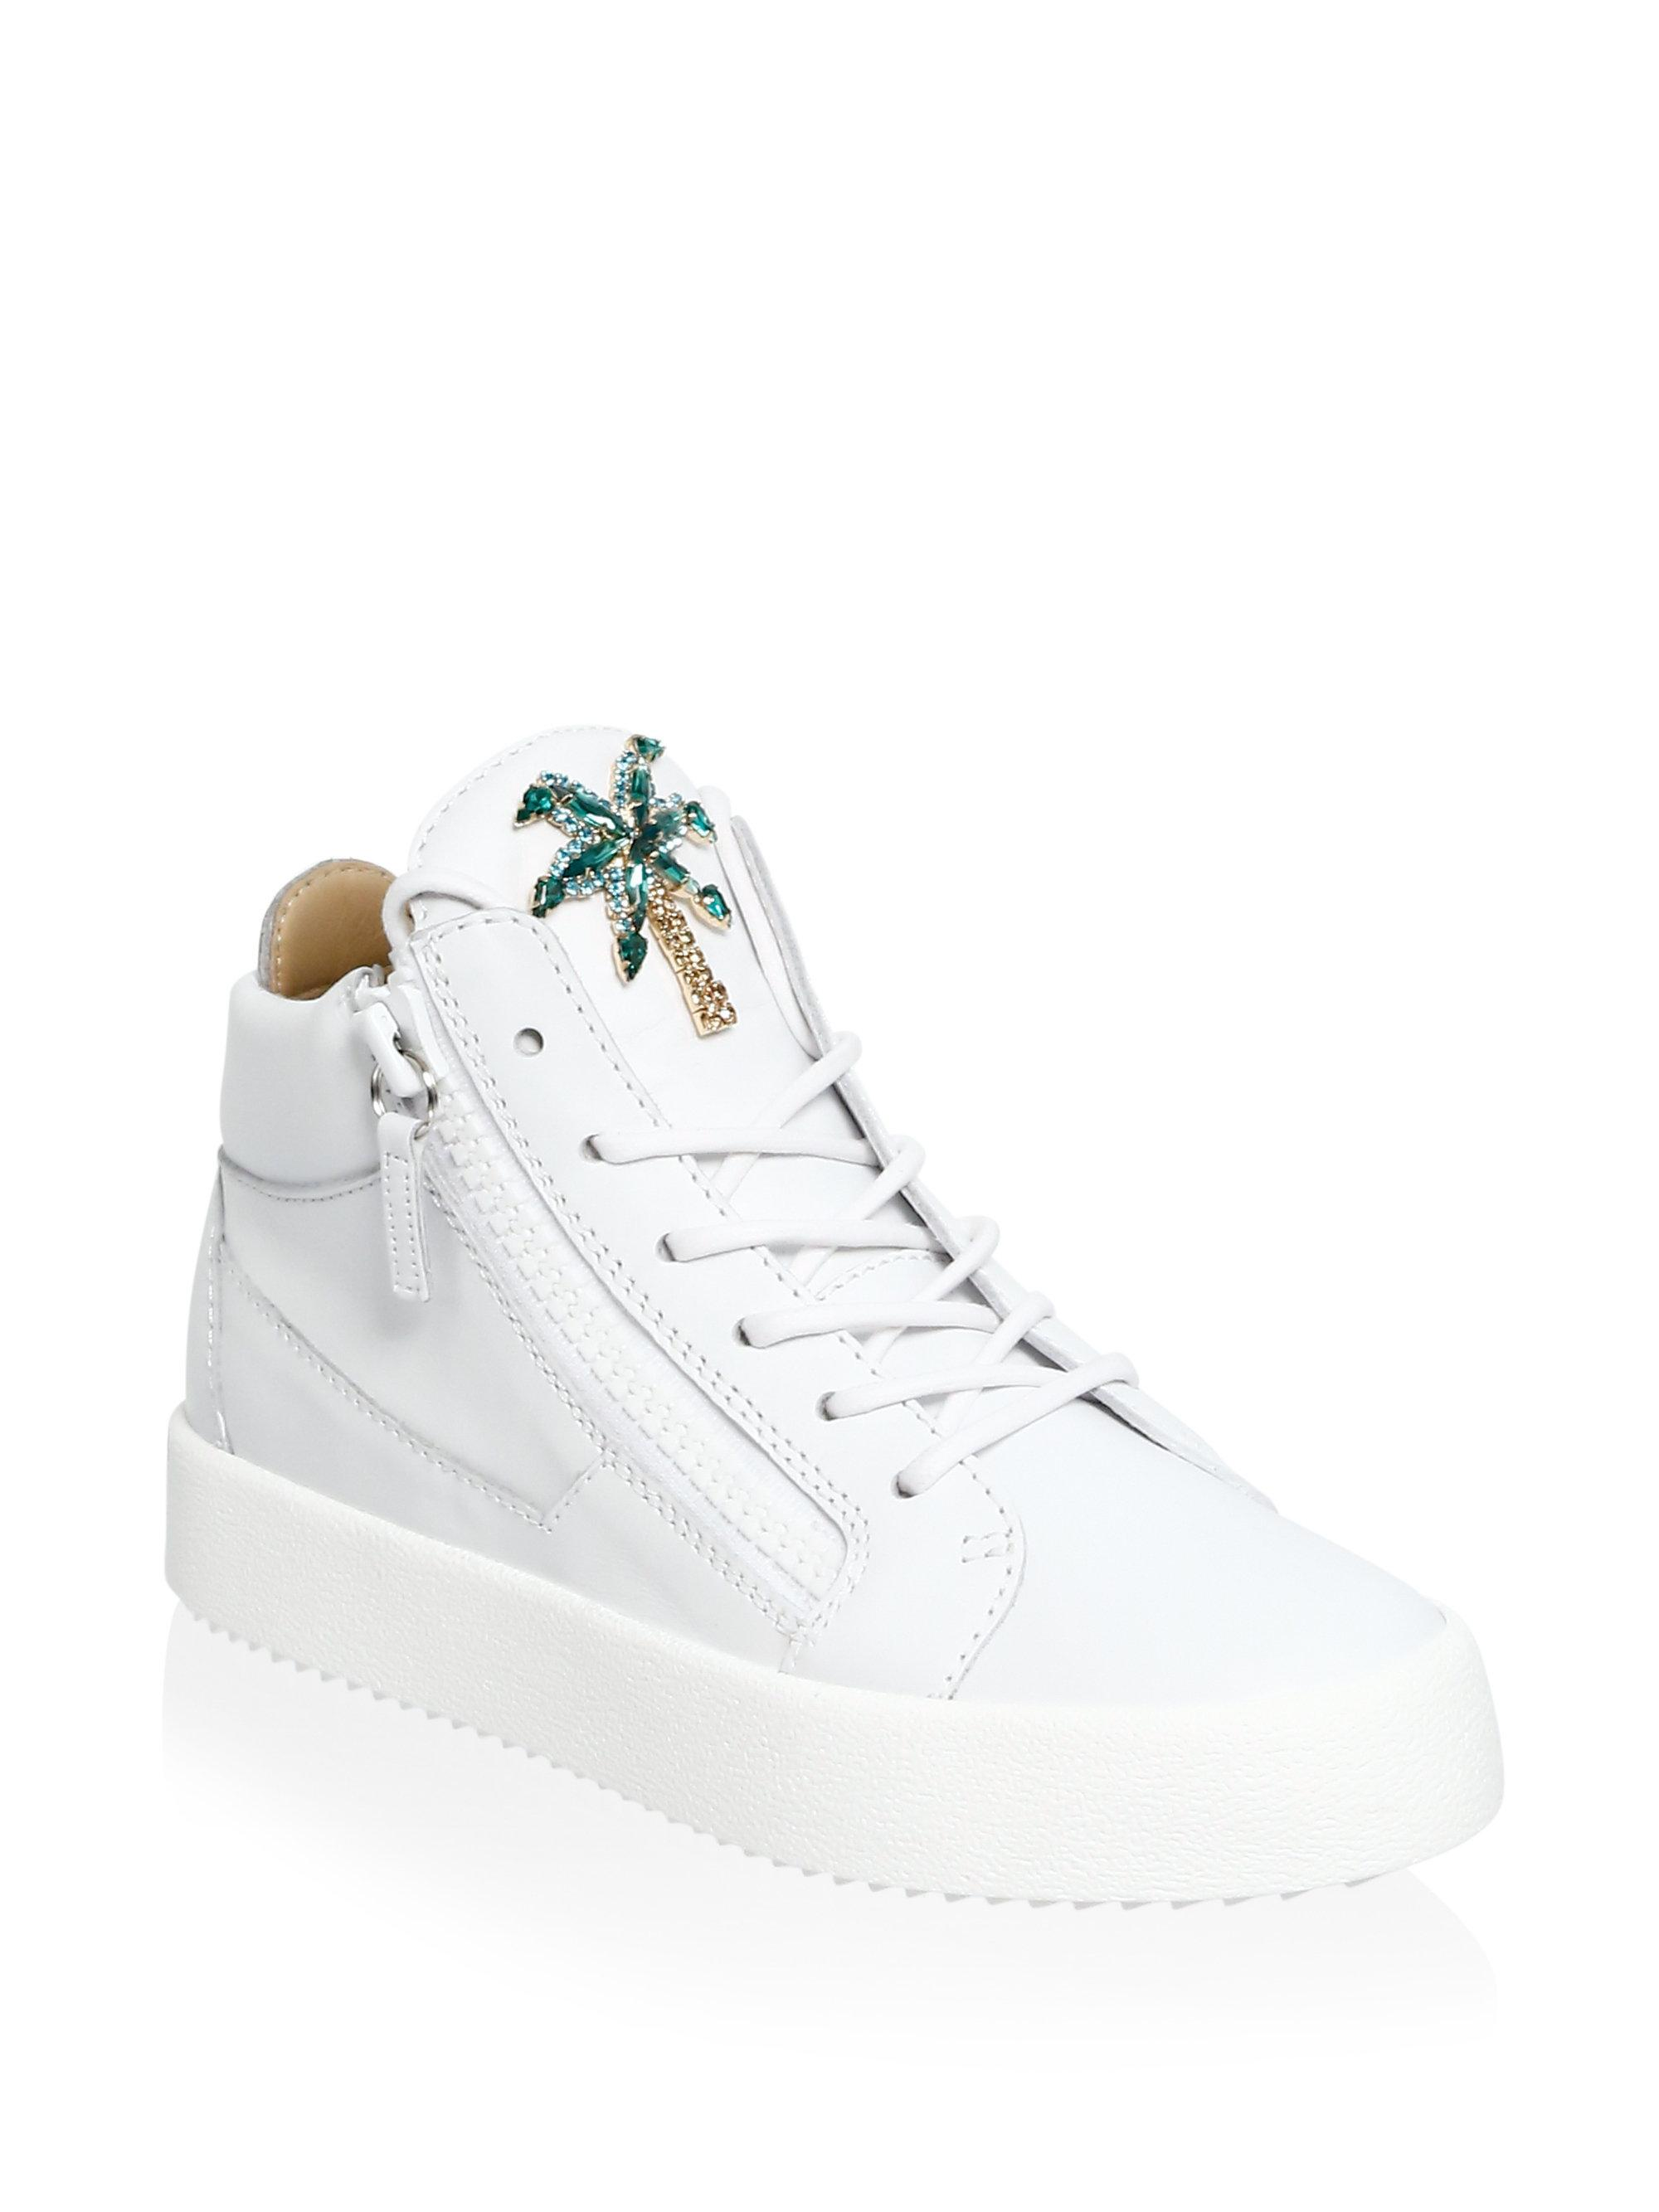 Giuseppe Zanotti May London Palm Tree Leather Sneakers err1kgg